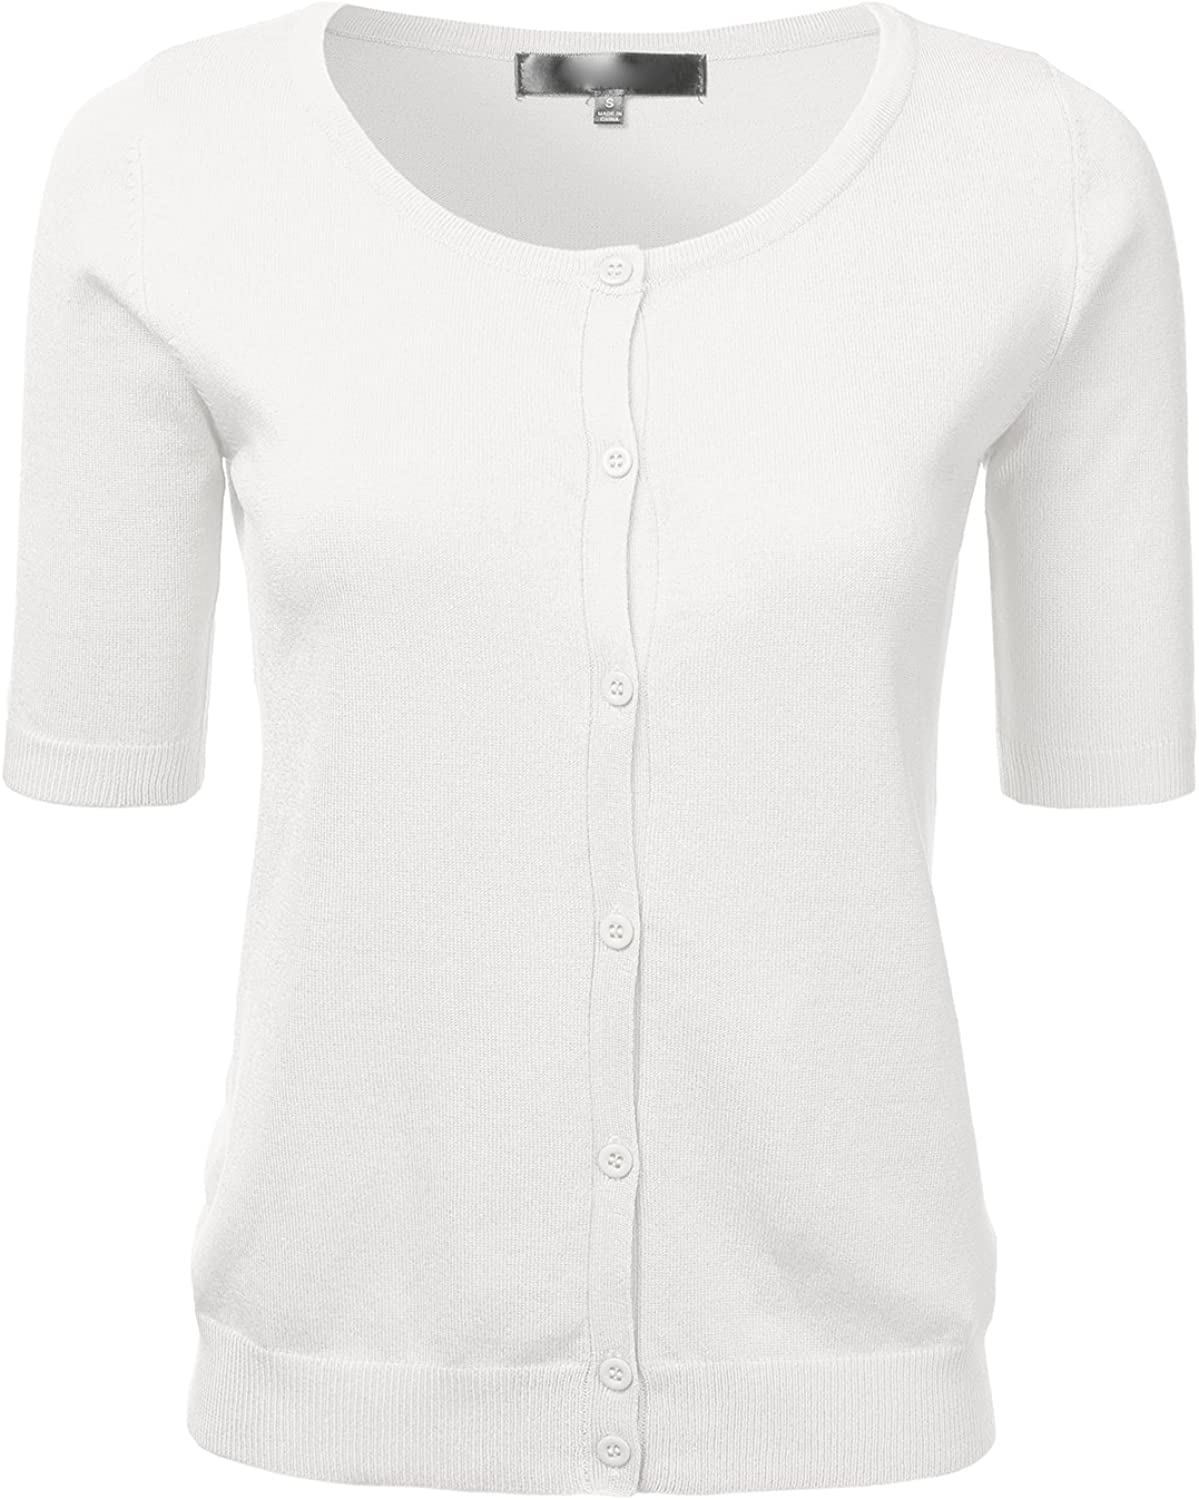 Womens Button Down Fitted Short Sleeve Fine Knit Top Cardigan Sweater